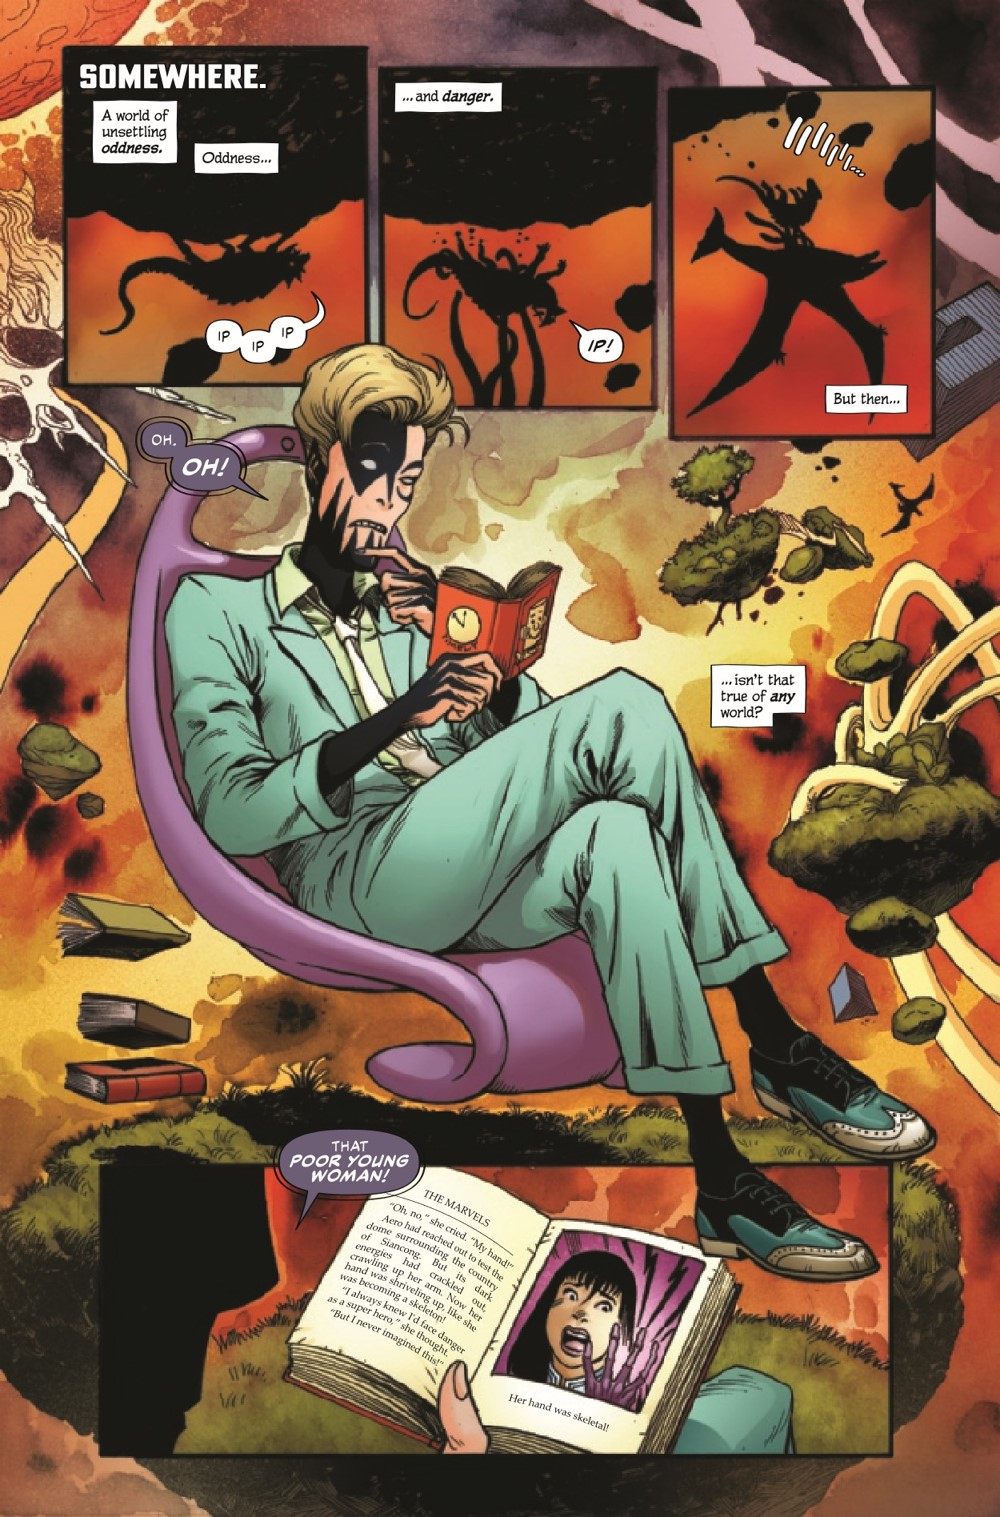 MAR2021005_Preview-3 ComicList Previews: THE MARVELS #5